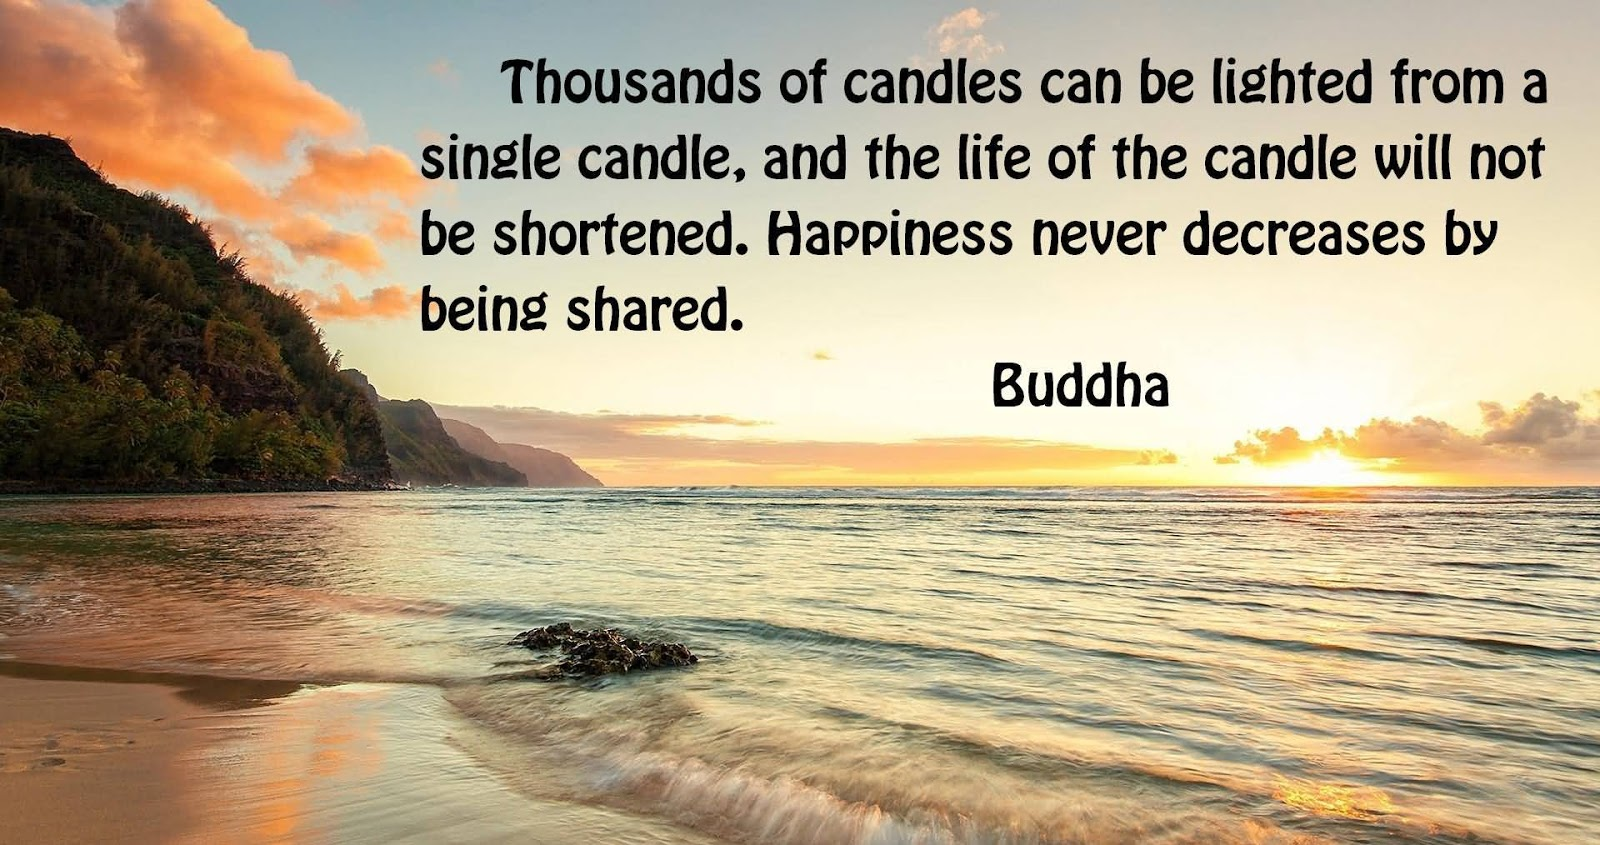 Buddha Quotes On Happiness 30 Happiness Quotes With Images To Brighten Your Day